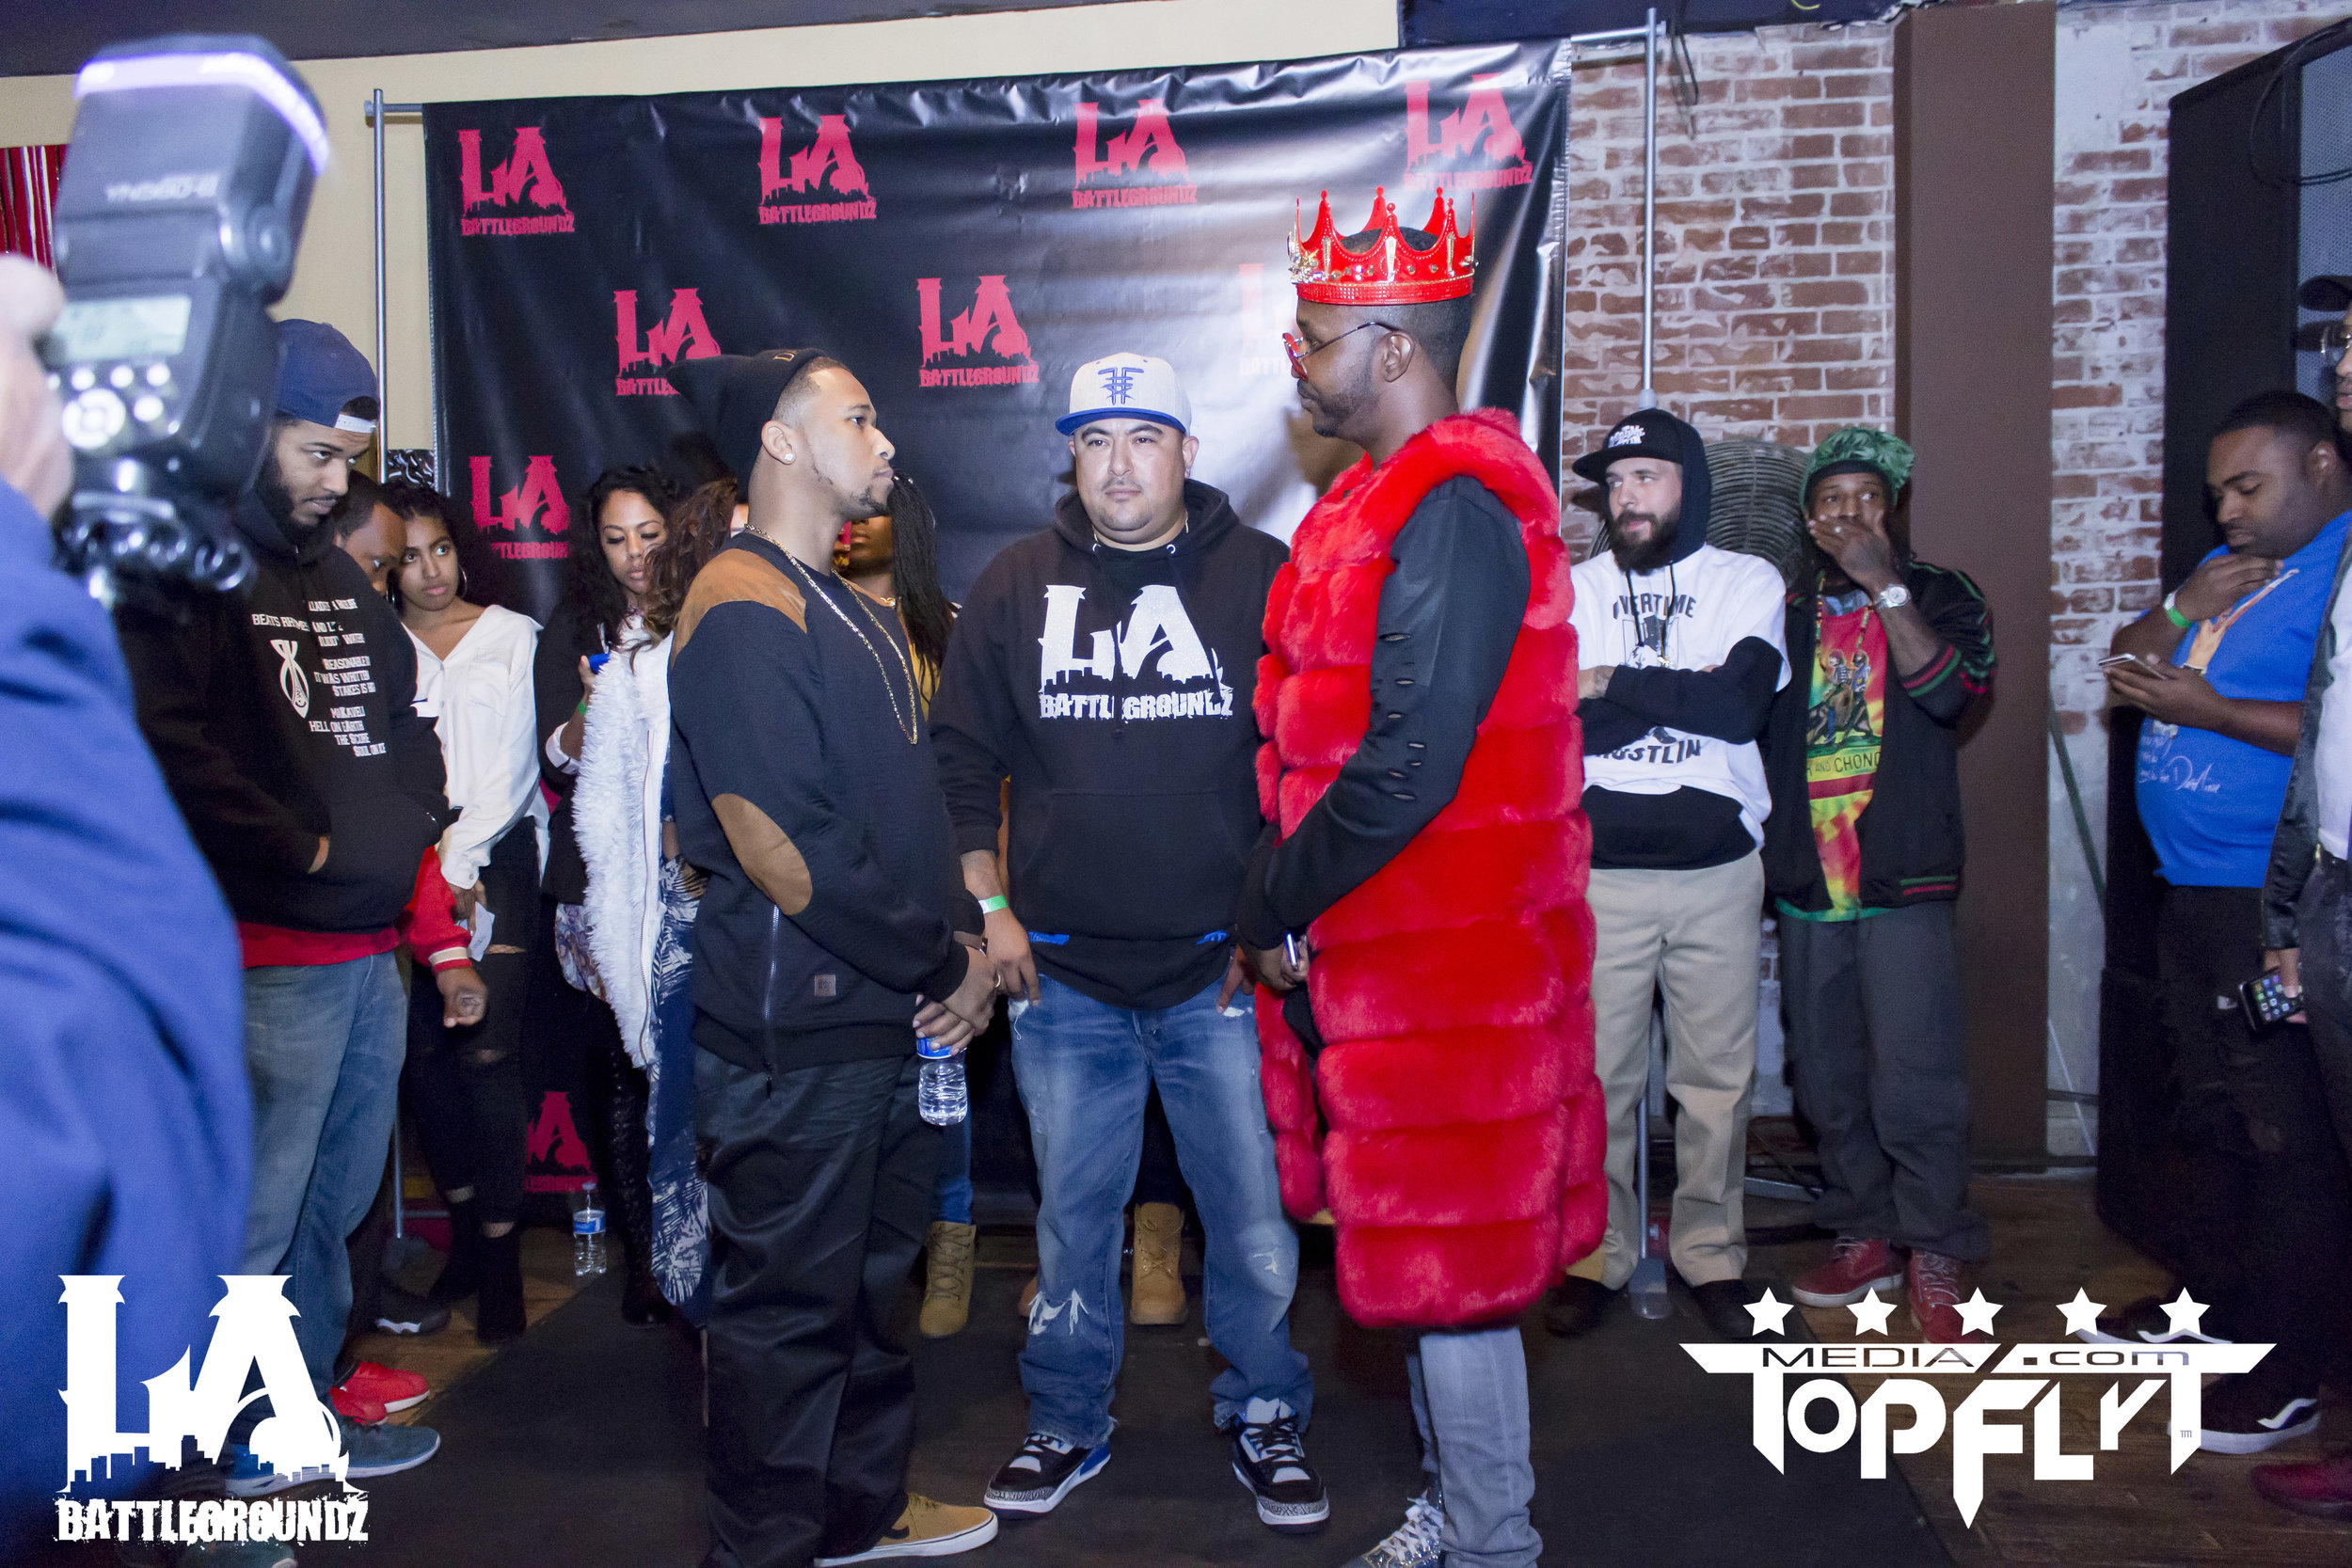 LA Battlegroundz - Decembarfest - The Christening_54.jpg